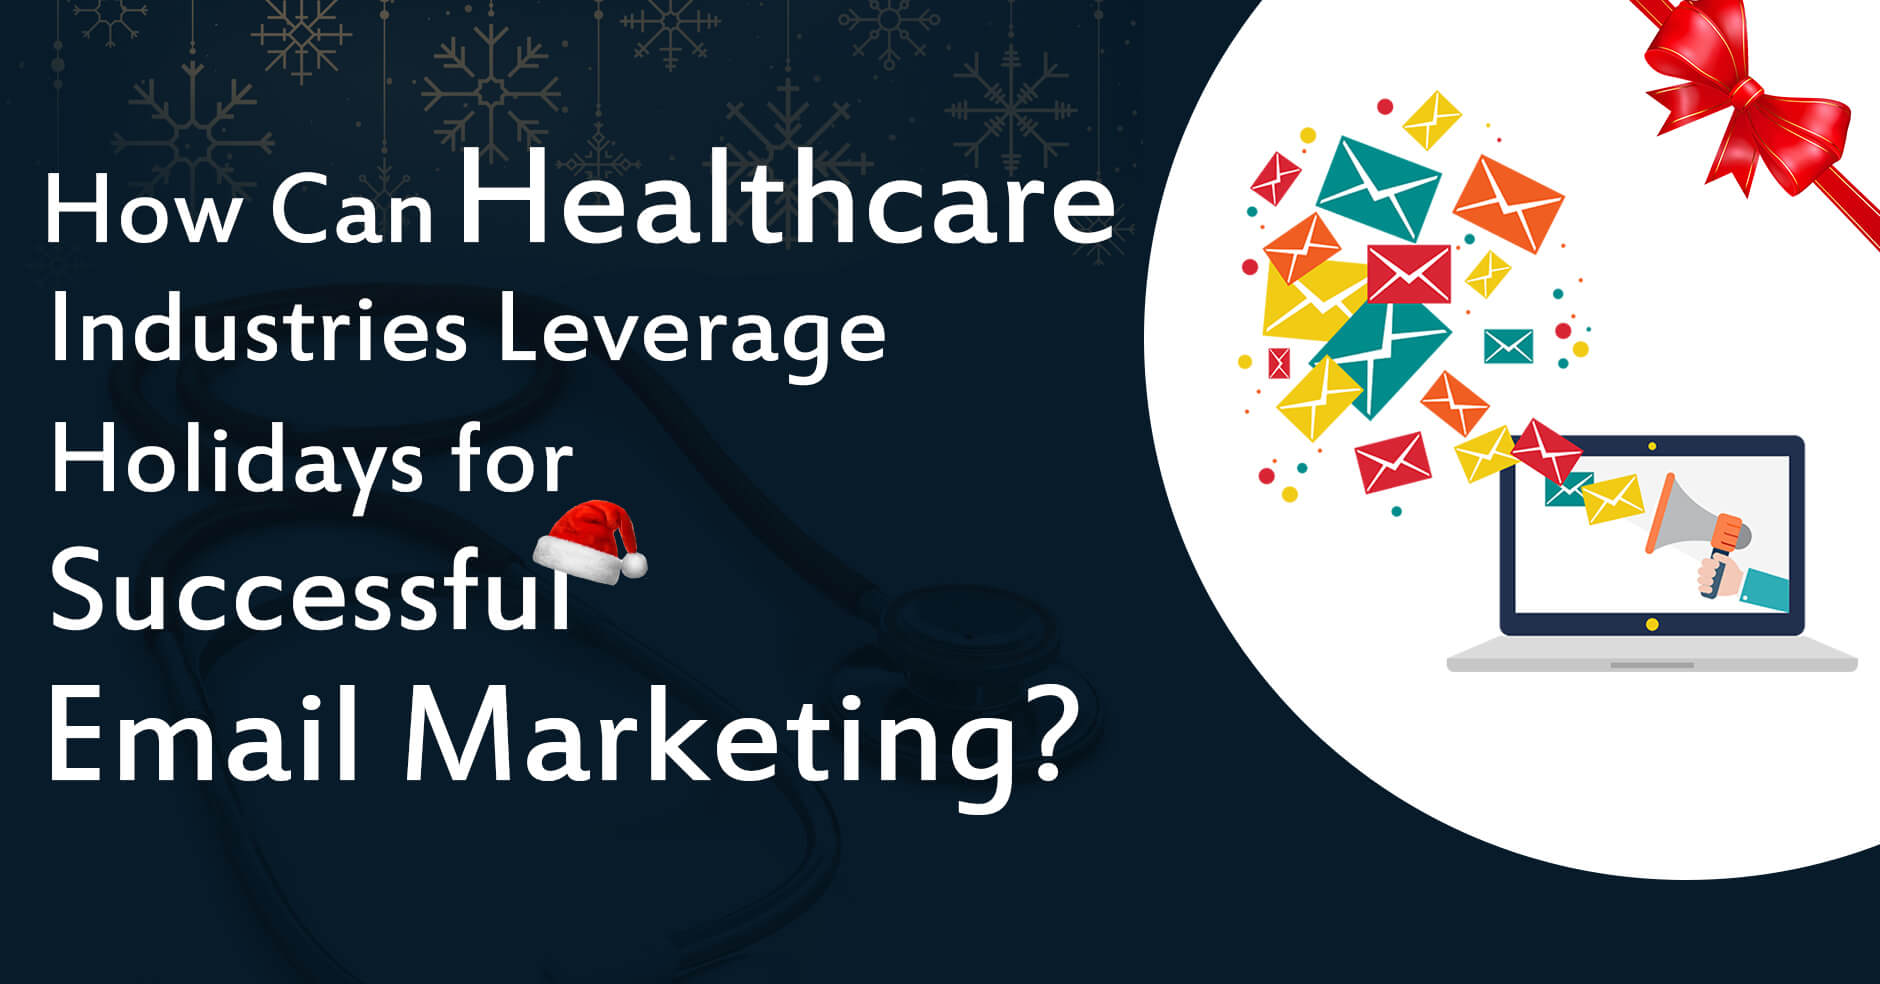 How Can Healthcare Industries Leverage Holidays for Successful Email Marketing?